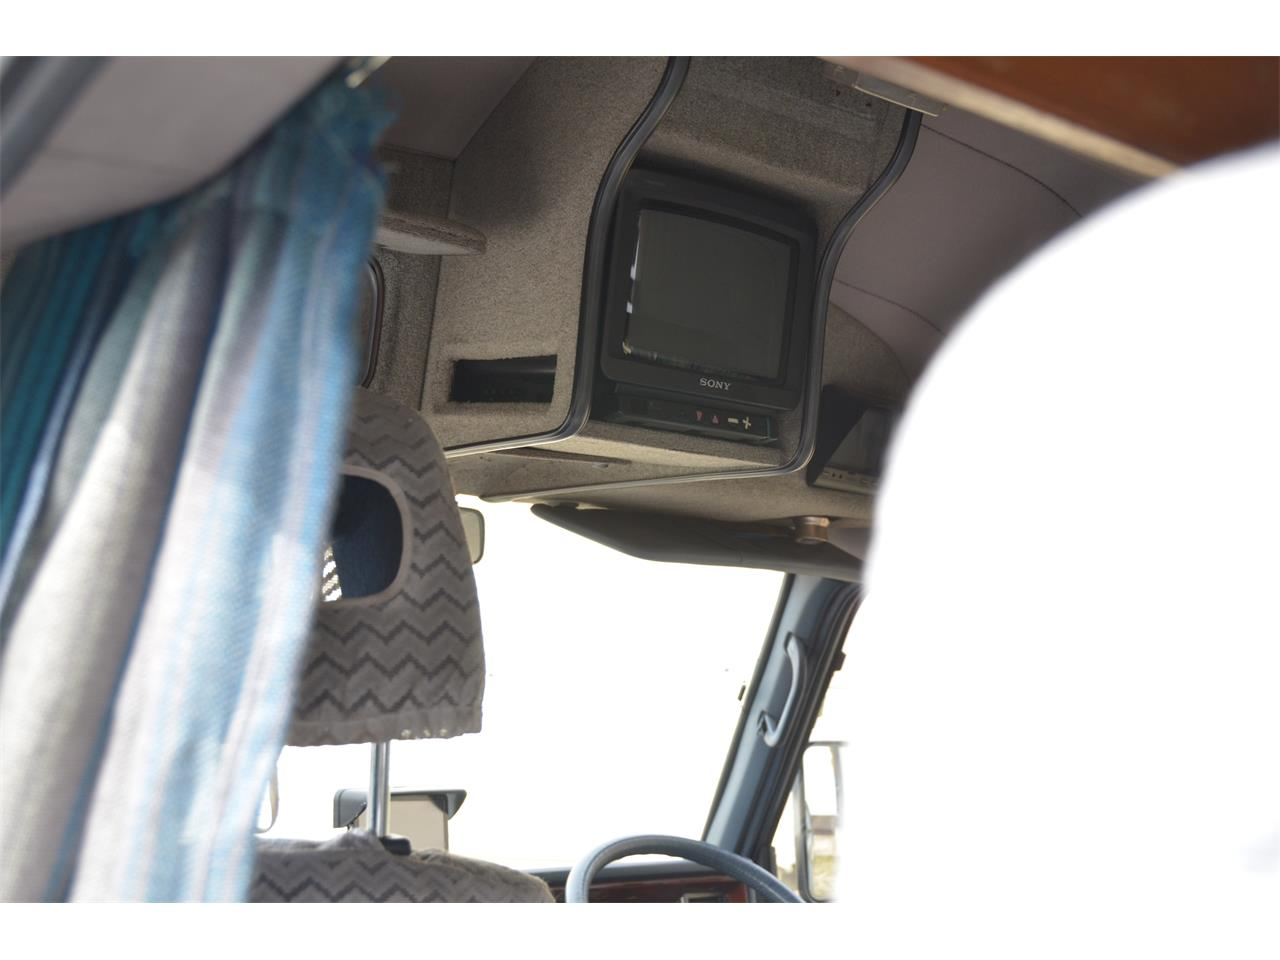 Large Picture of 1990 Nissan Caravan - $17,900.00 Offered by Duncan Imports & Classic Cars - LN58